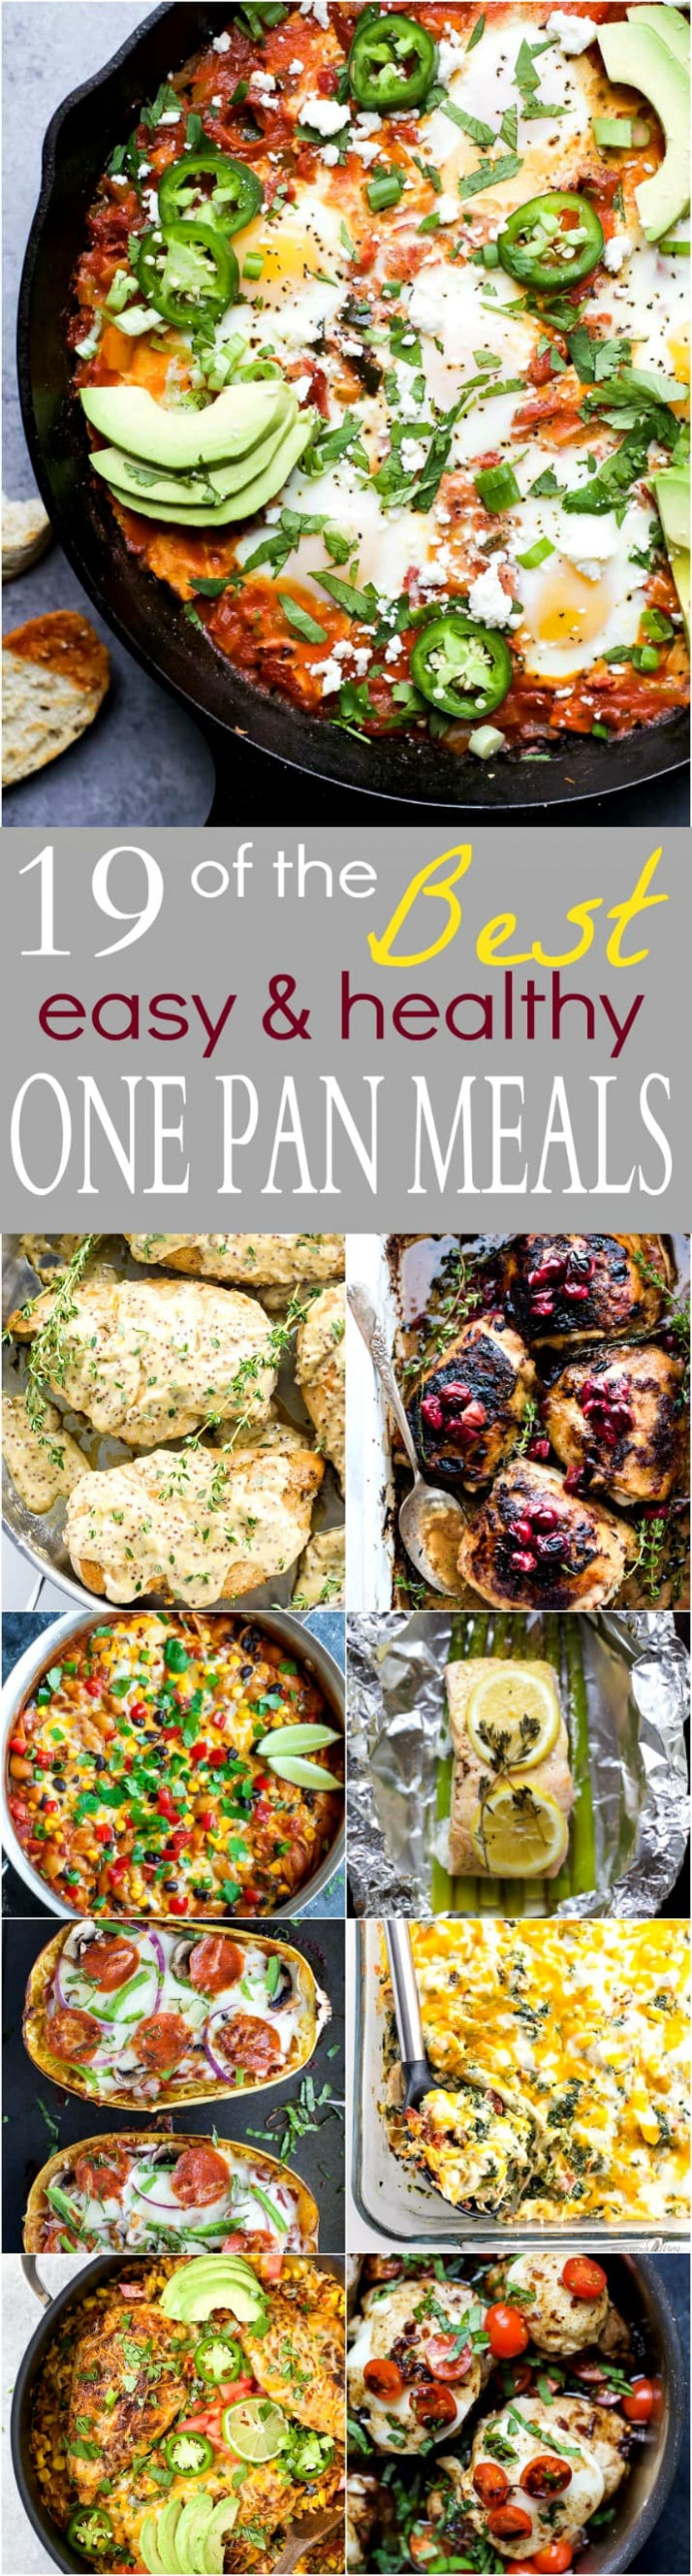 19 of the BEST Easy & Healthy One Pan Meals | Easy Healthy ...